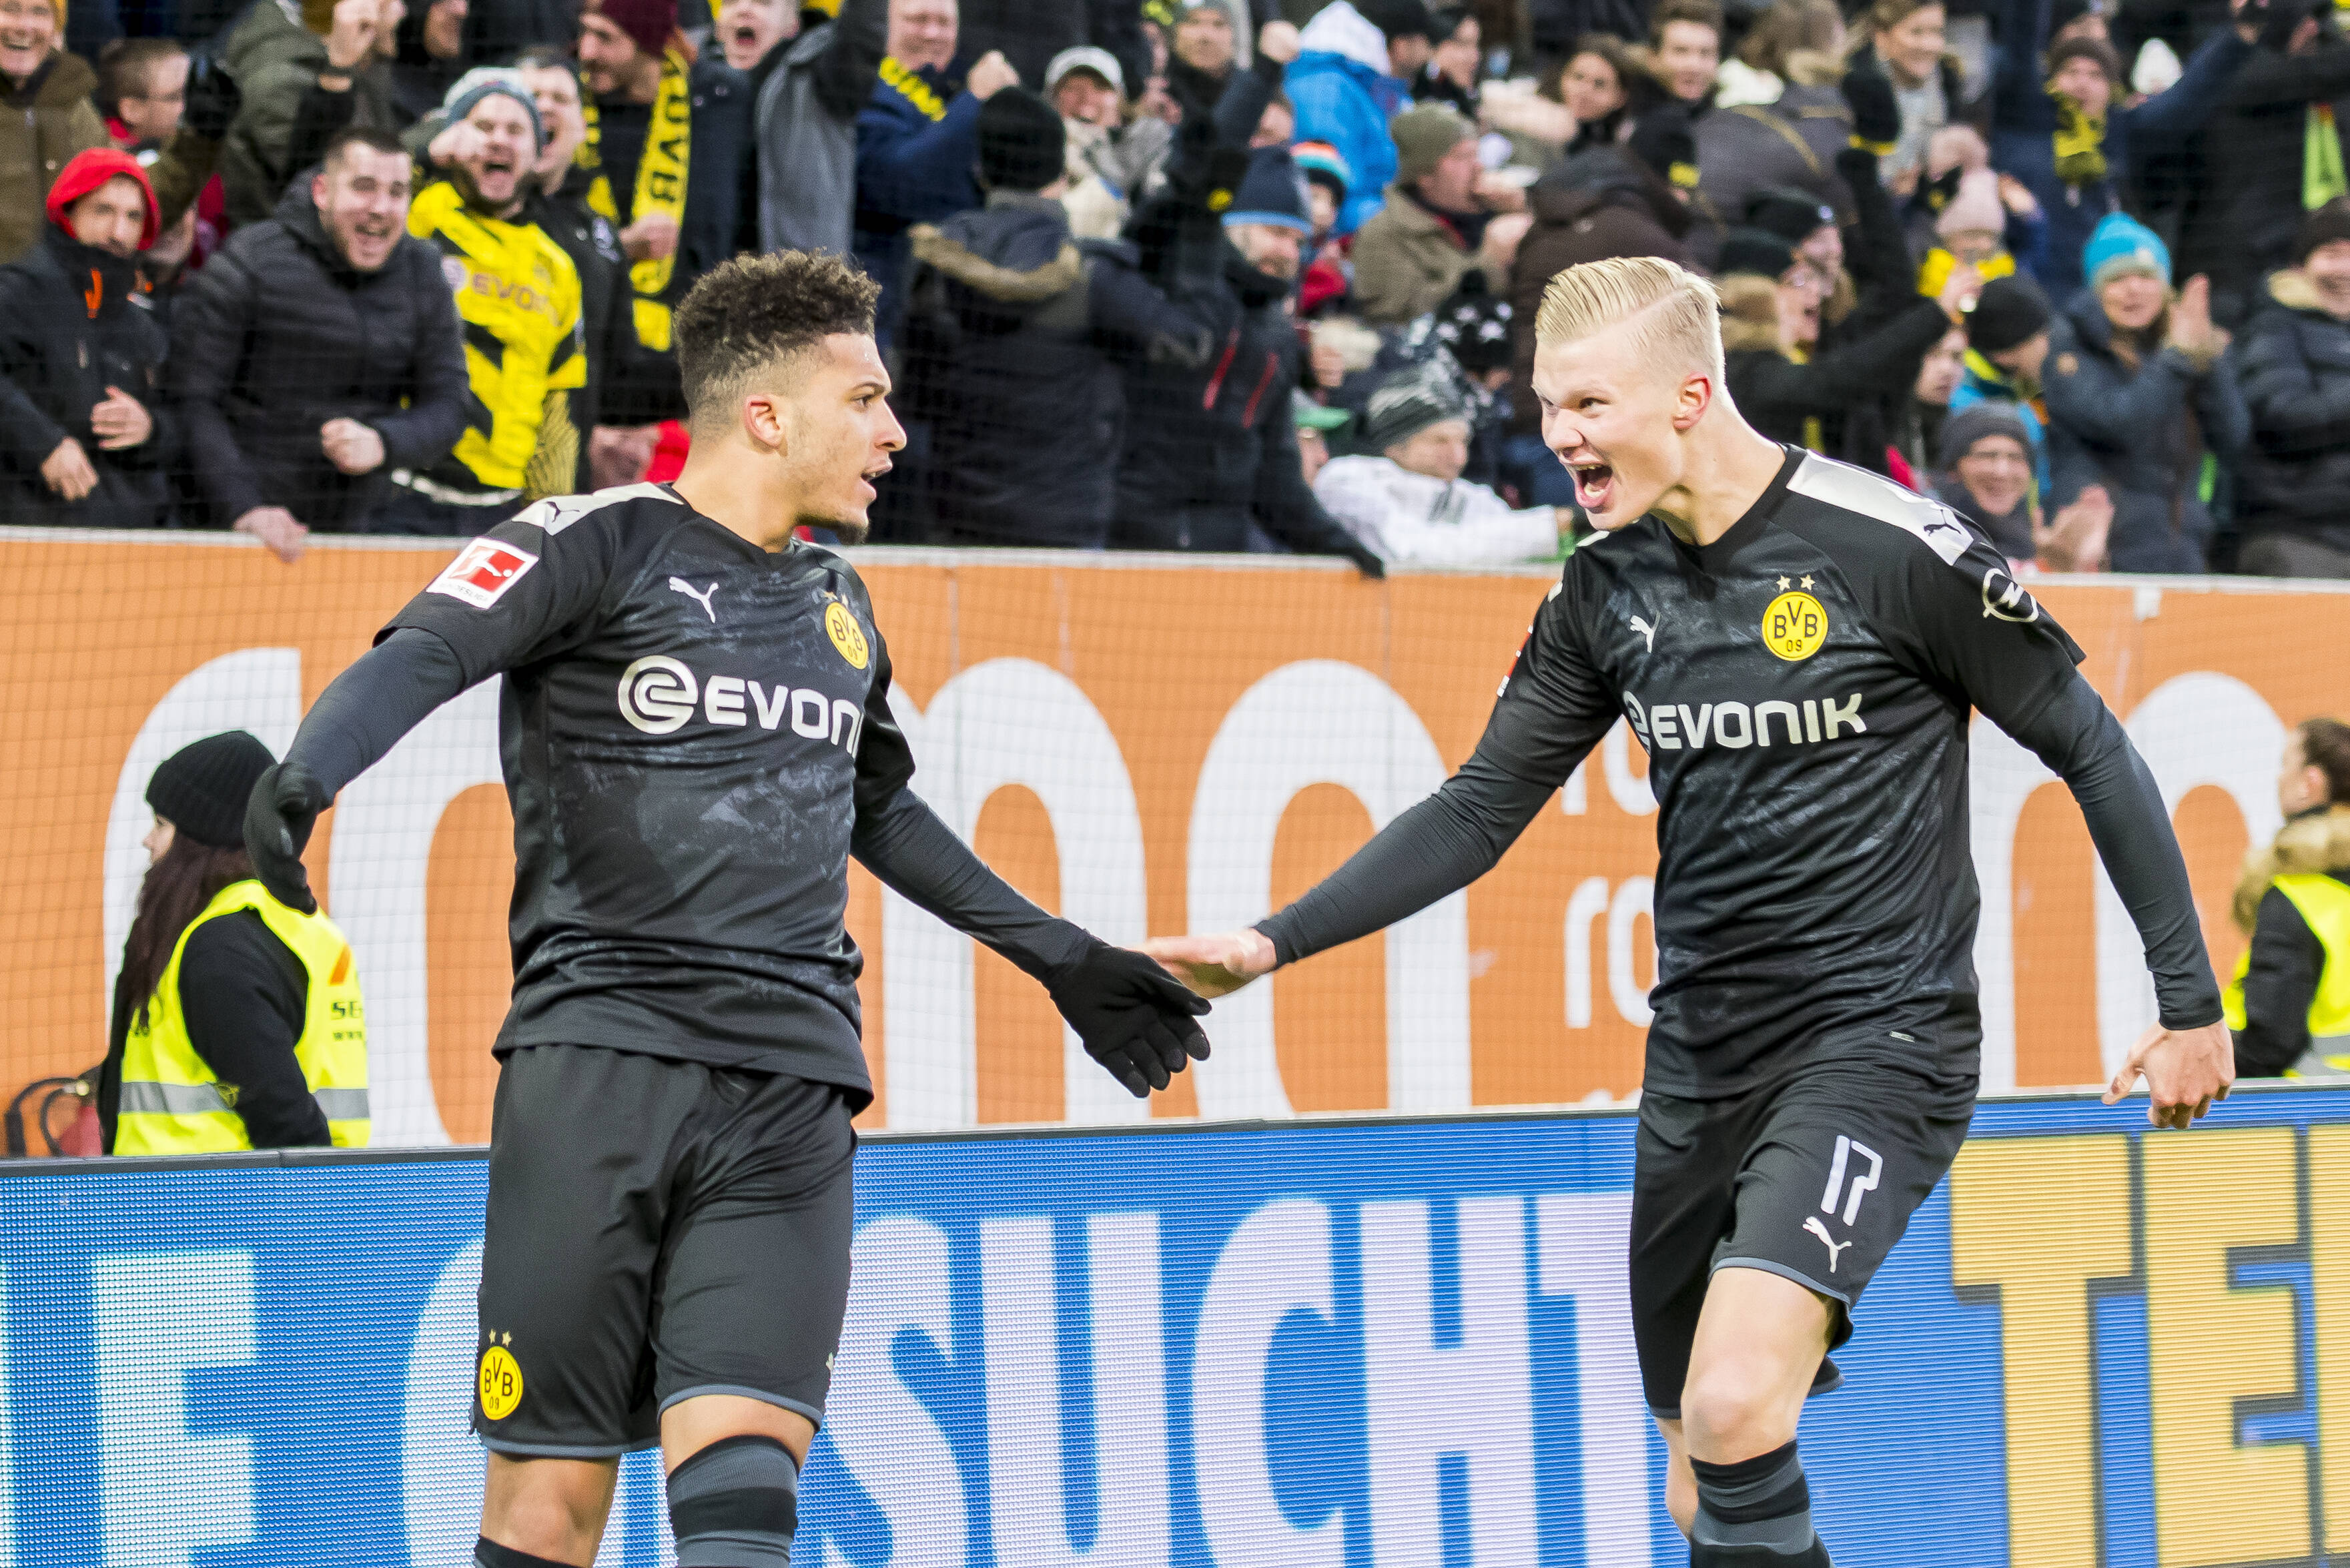 Football - Ligue des champions - Dortmund-PSG: Comment le Borussia vit à travers la culture de la jeunesse